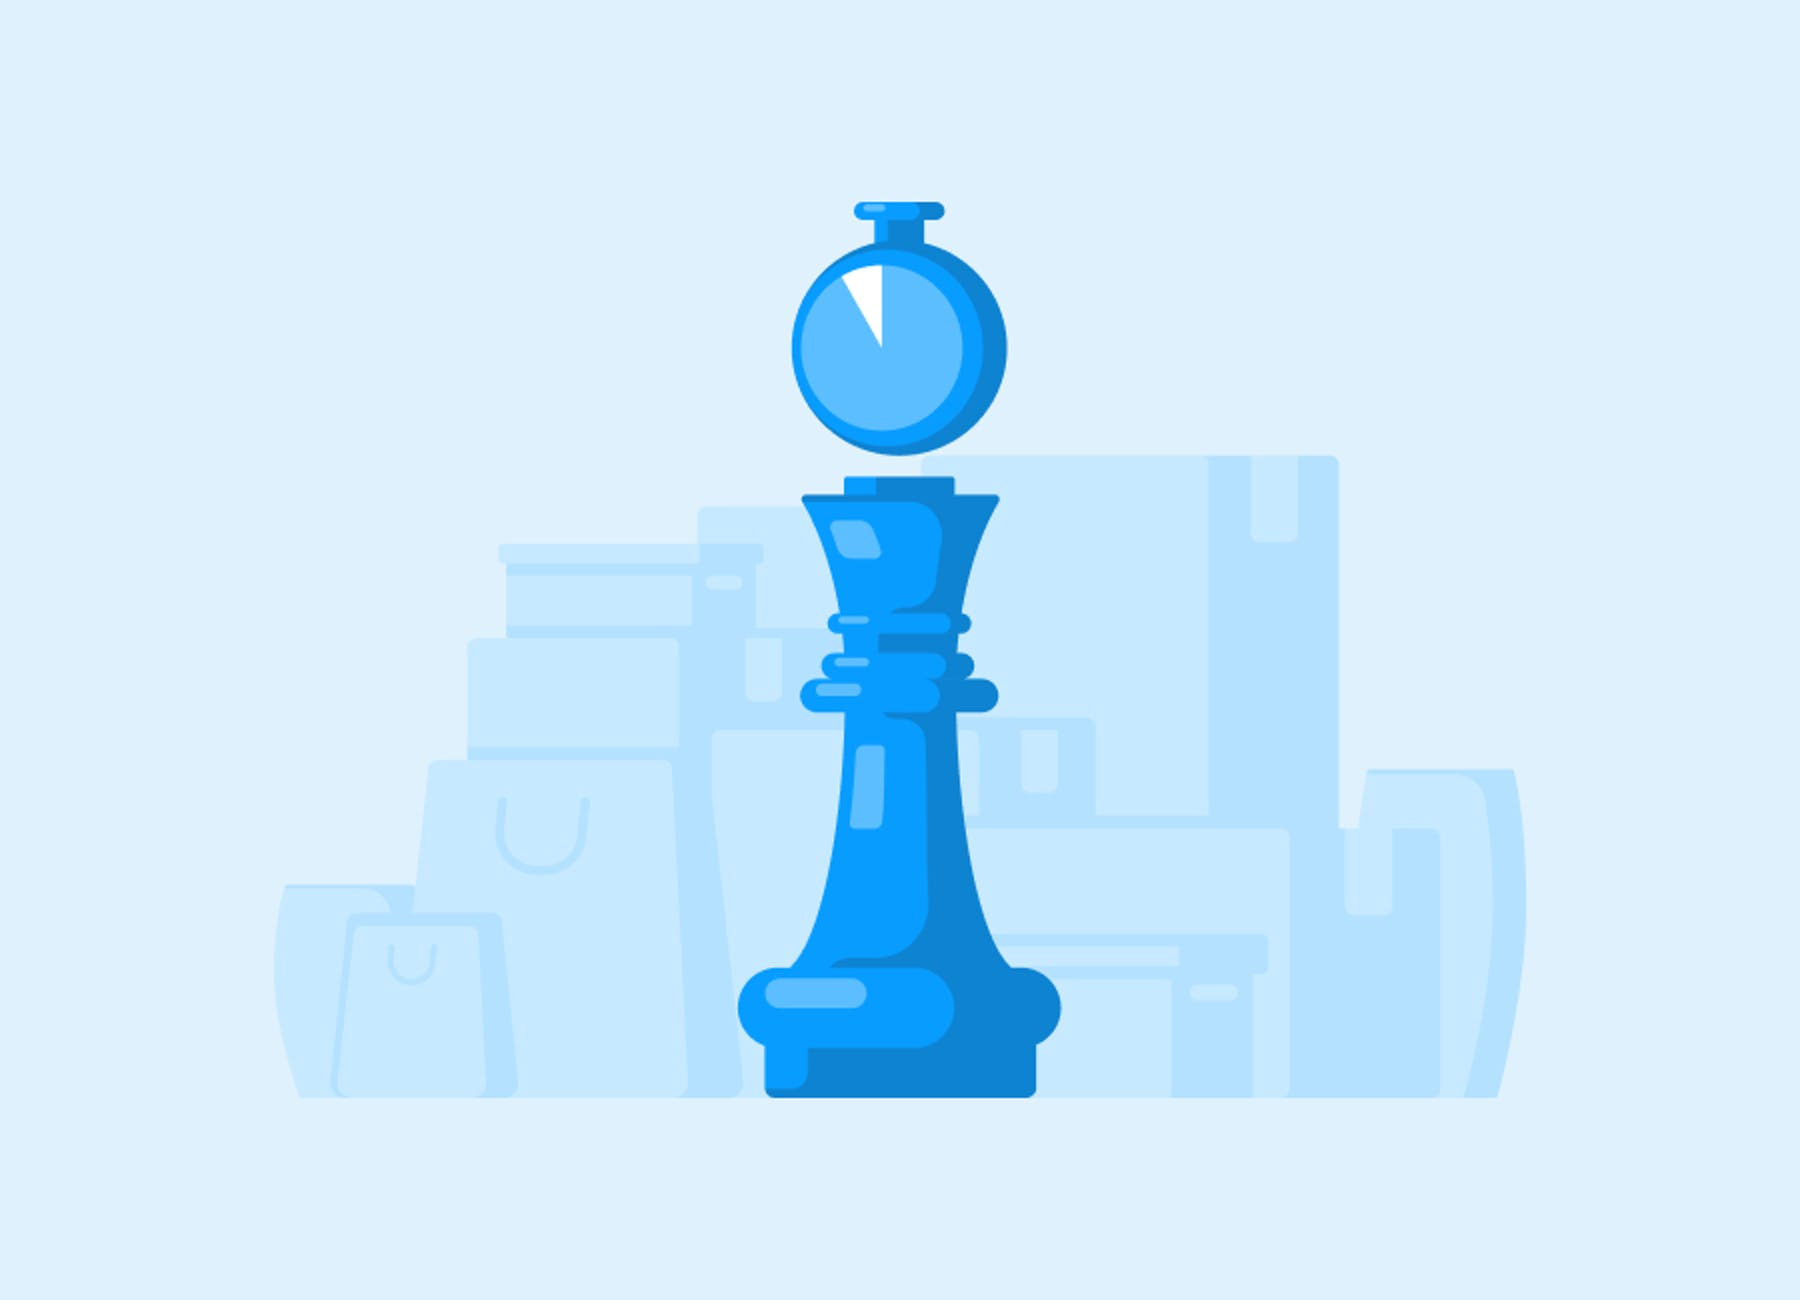 An illustration of a chess pawn beneath a stop watch on a pale blue background.